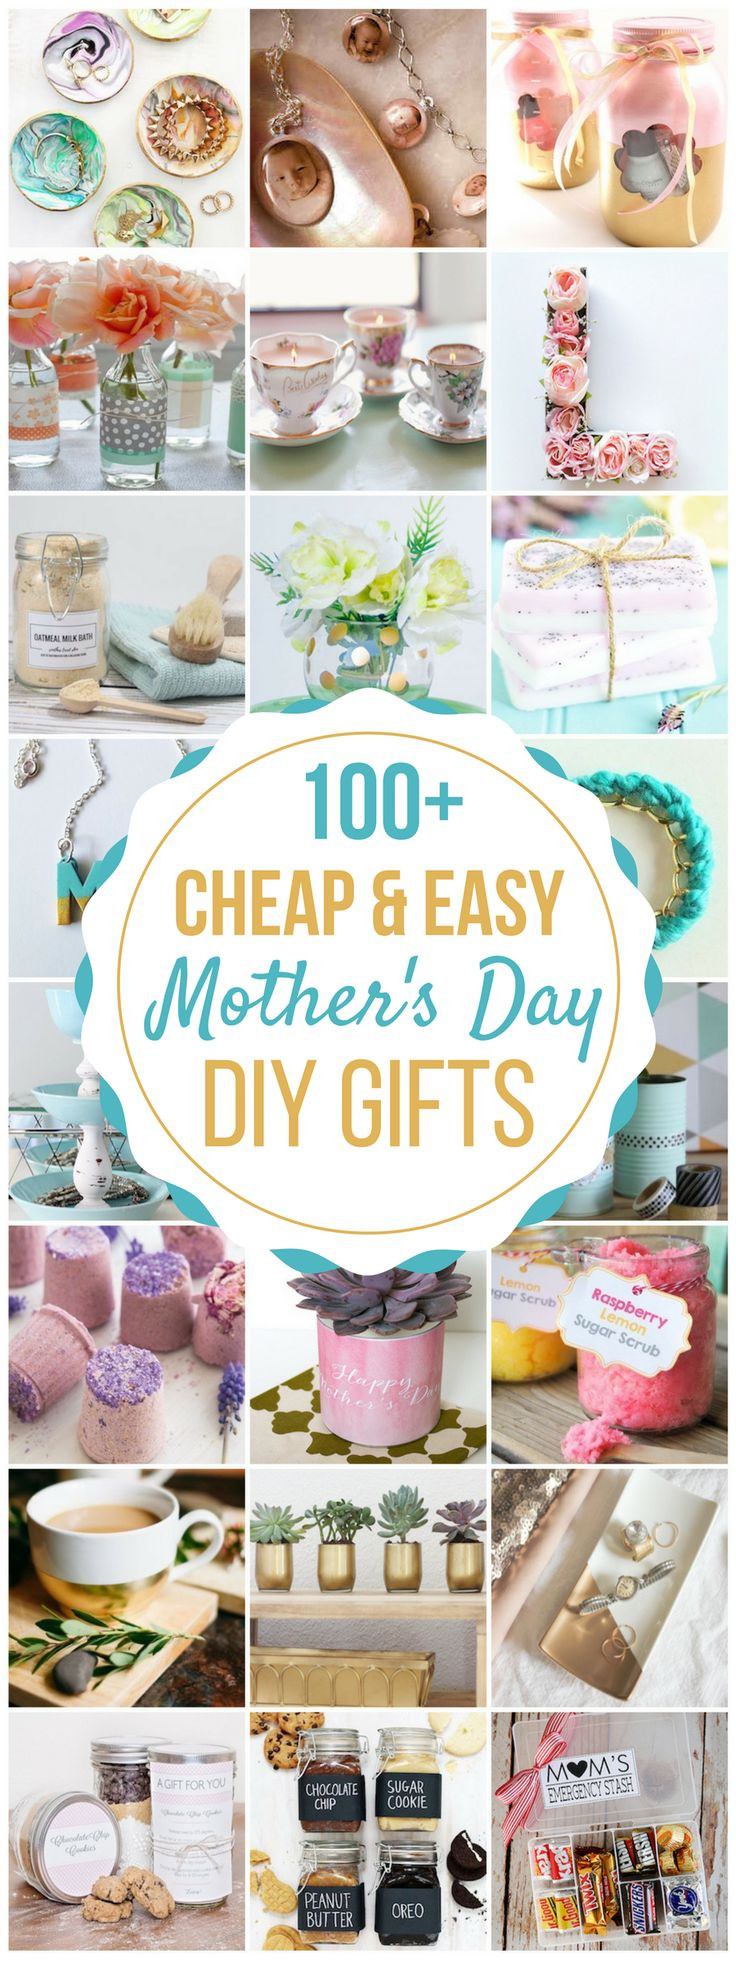 Best ideas about Mother Day Gifts DIY . Save or Pin 17 Best images about Homemade Gift Ideas on Pinterest Now.